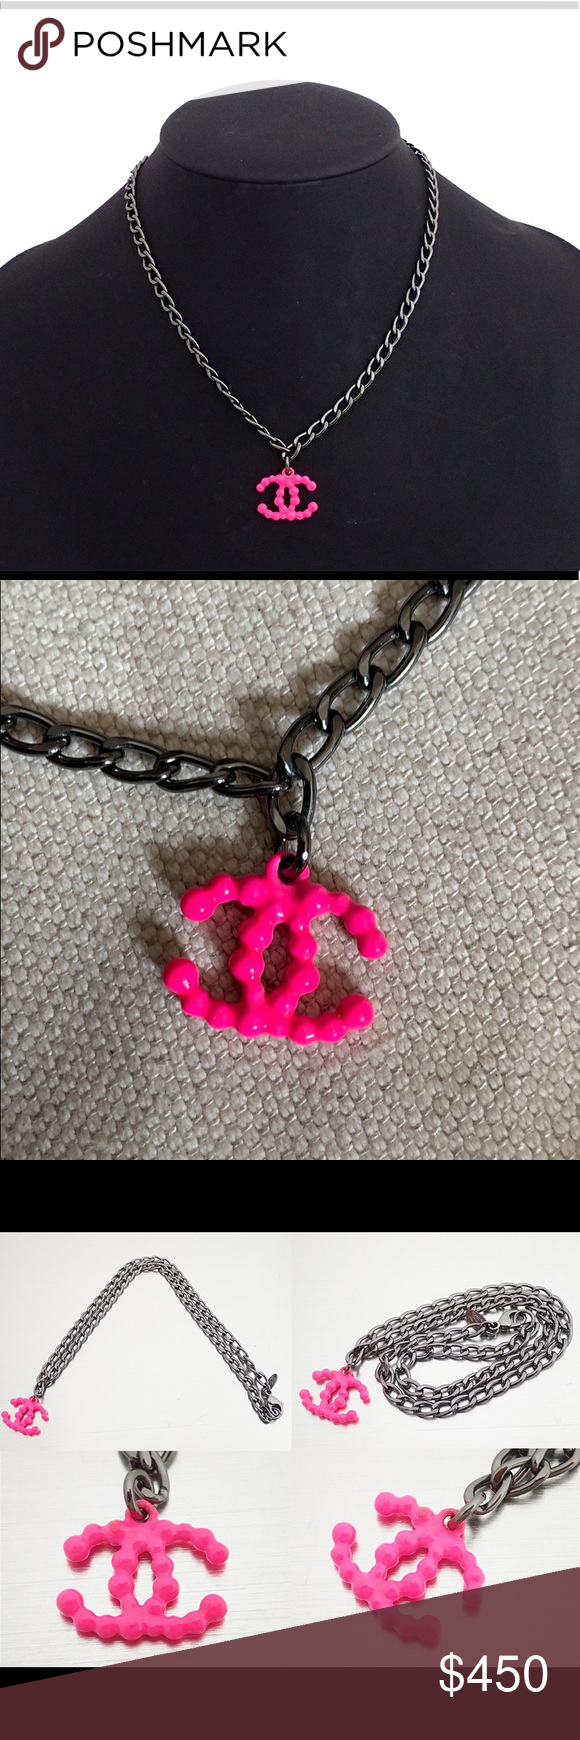 Chanel Pink Logo Bubble Necklace Metal chain. 16 inches